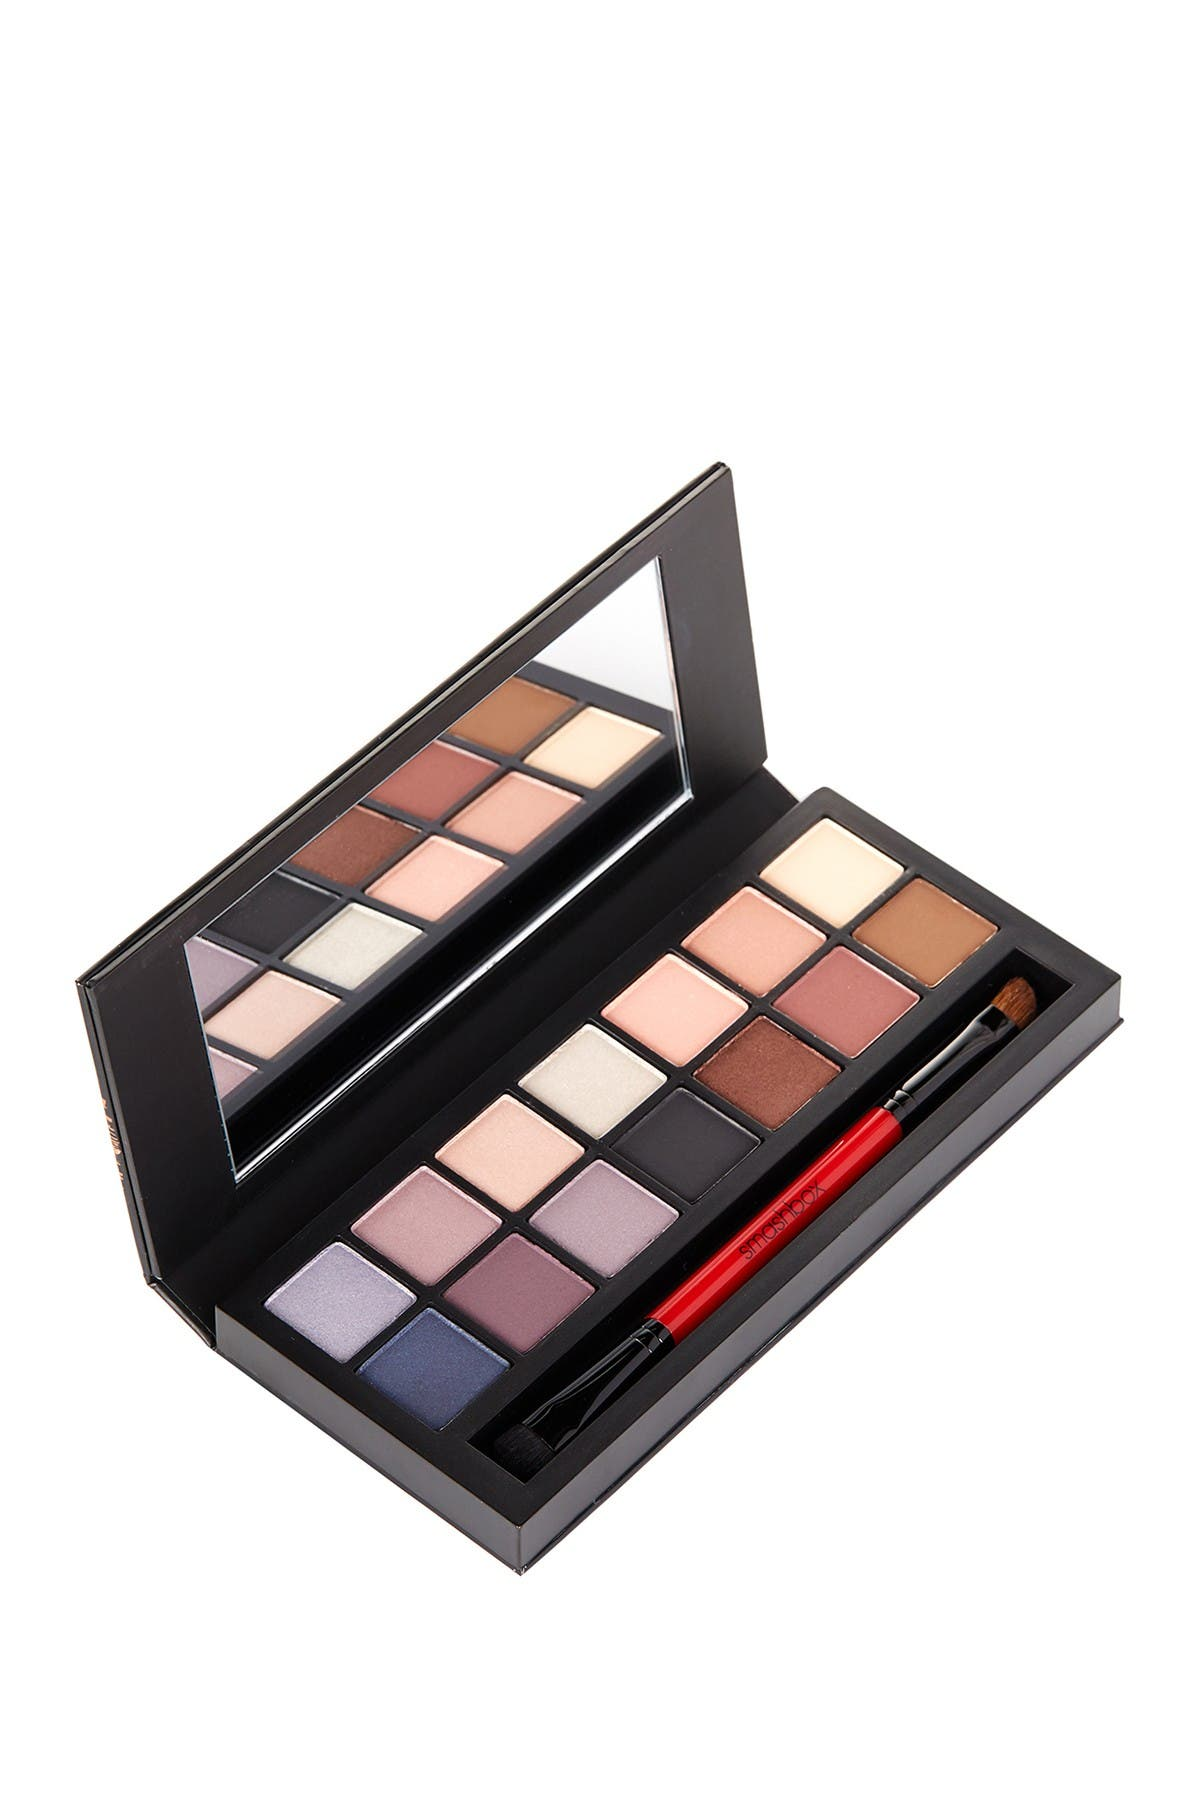 Image of Smashbox Double Exposure Palette